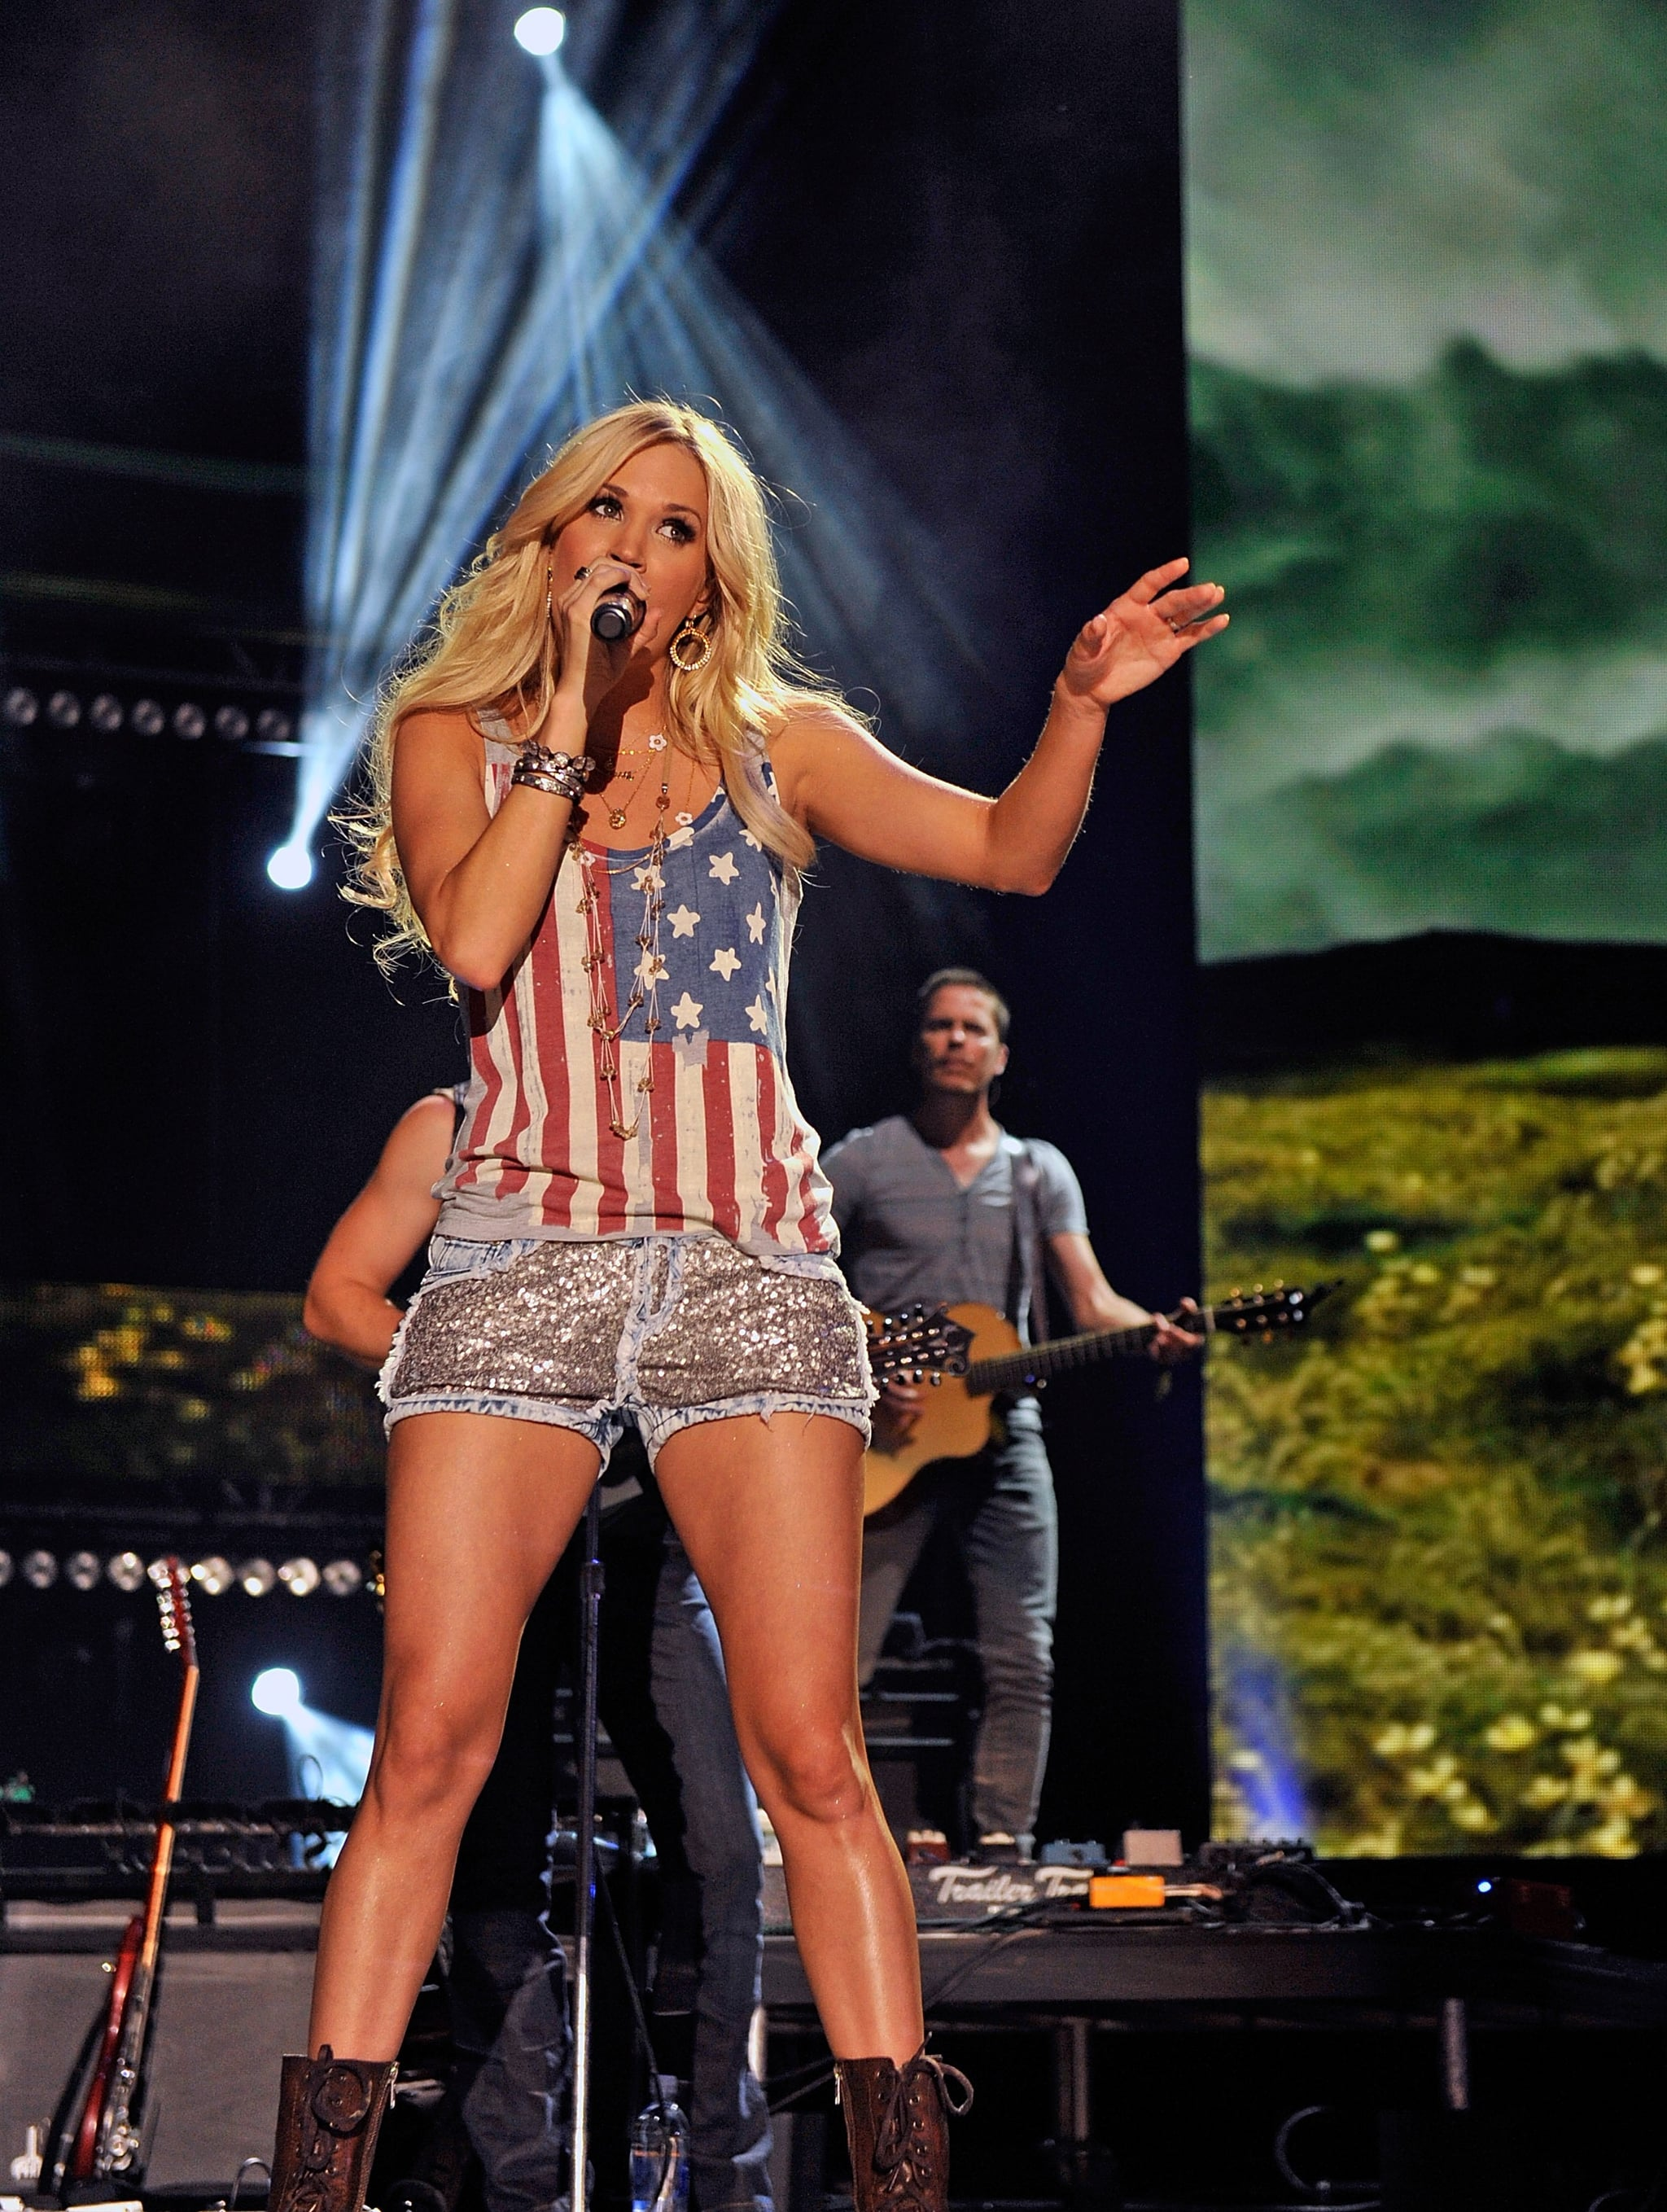 Carrie Underwood at the CMA Music Festival in 2012